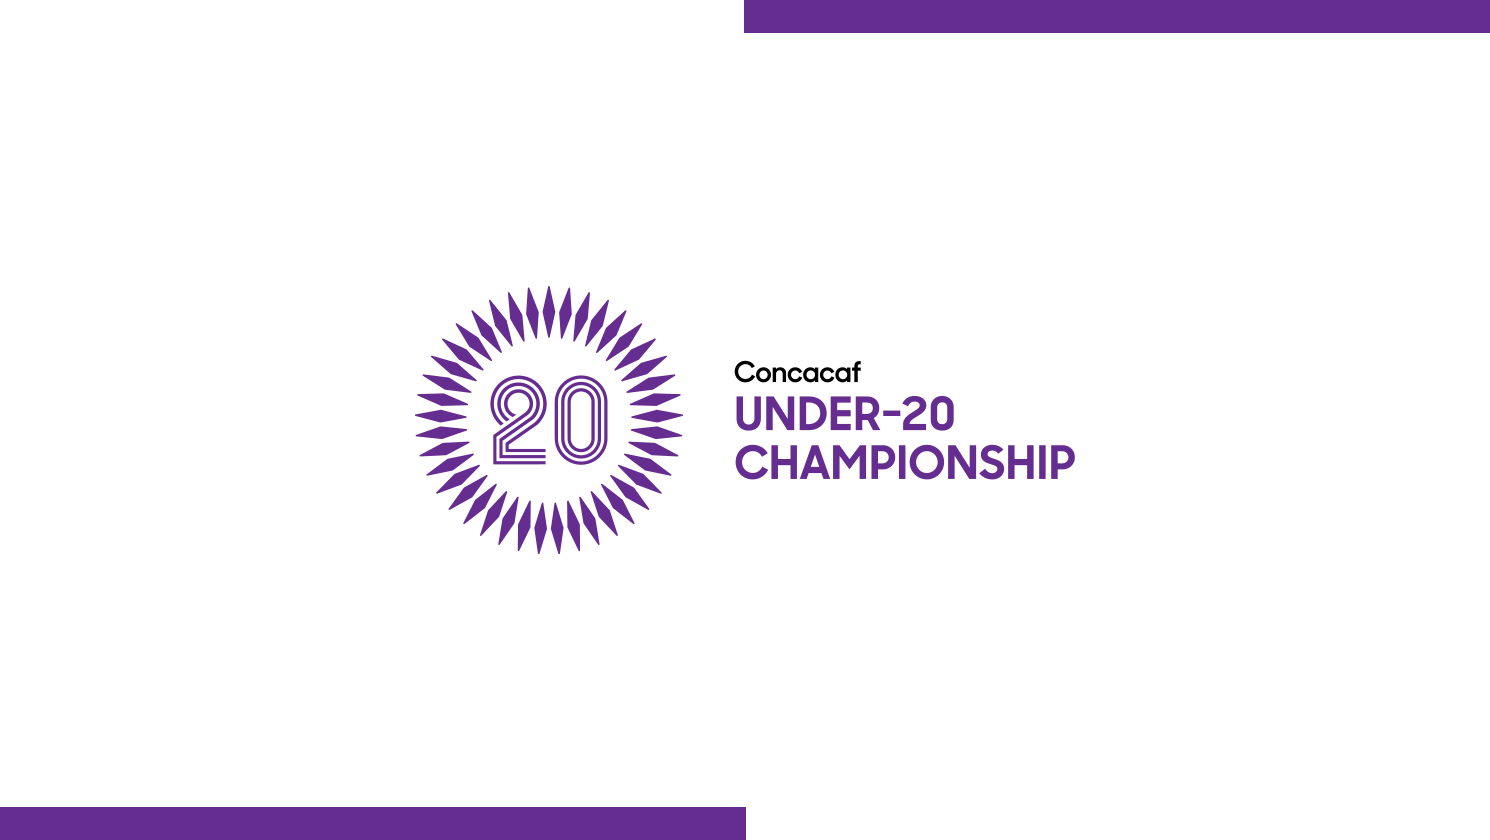 CONCACAF Men's U20 Championship to act as Olympic qualifying for Paris 2024